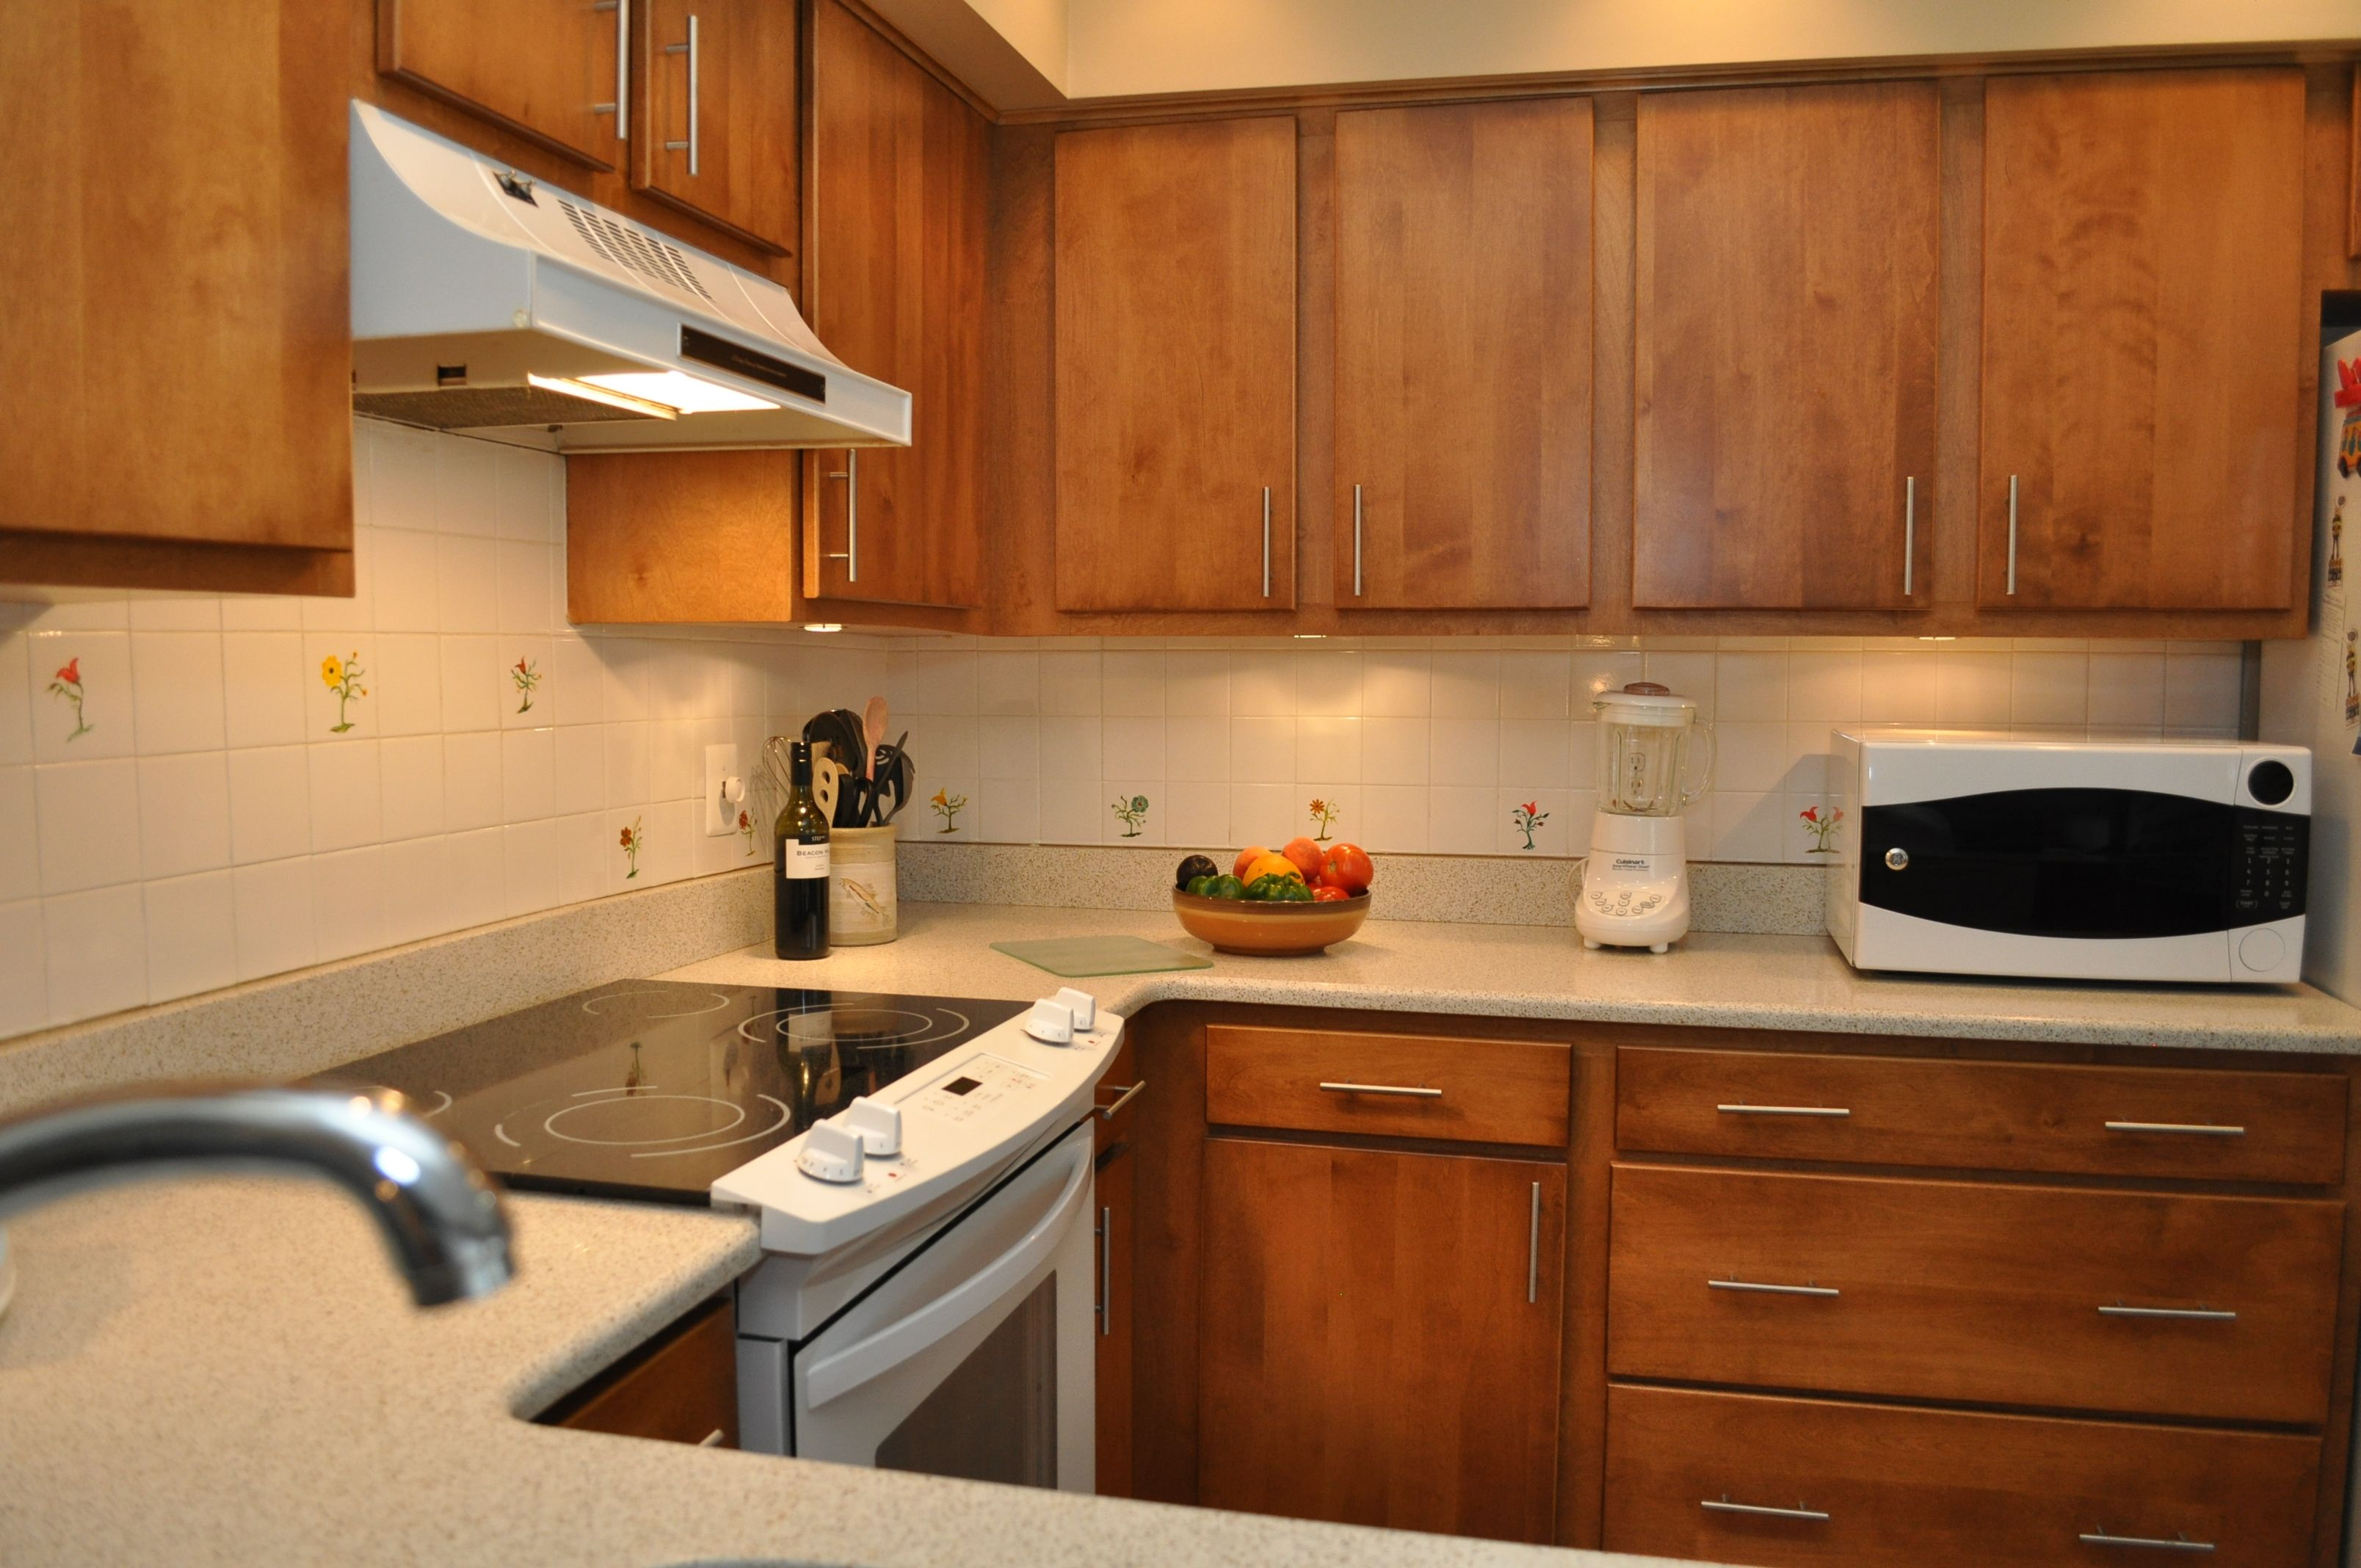 Interior Kitchen Cabinets Washington Dc these cabinets give your kitchen flare repin if you agree washington dc